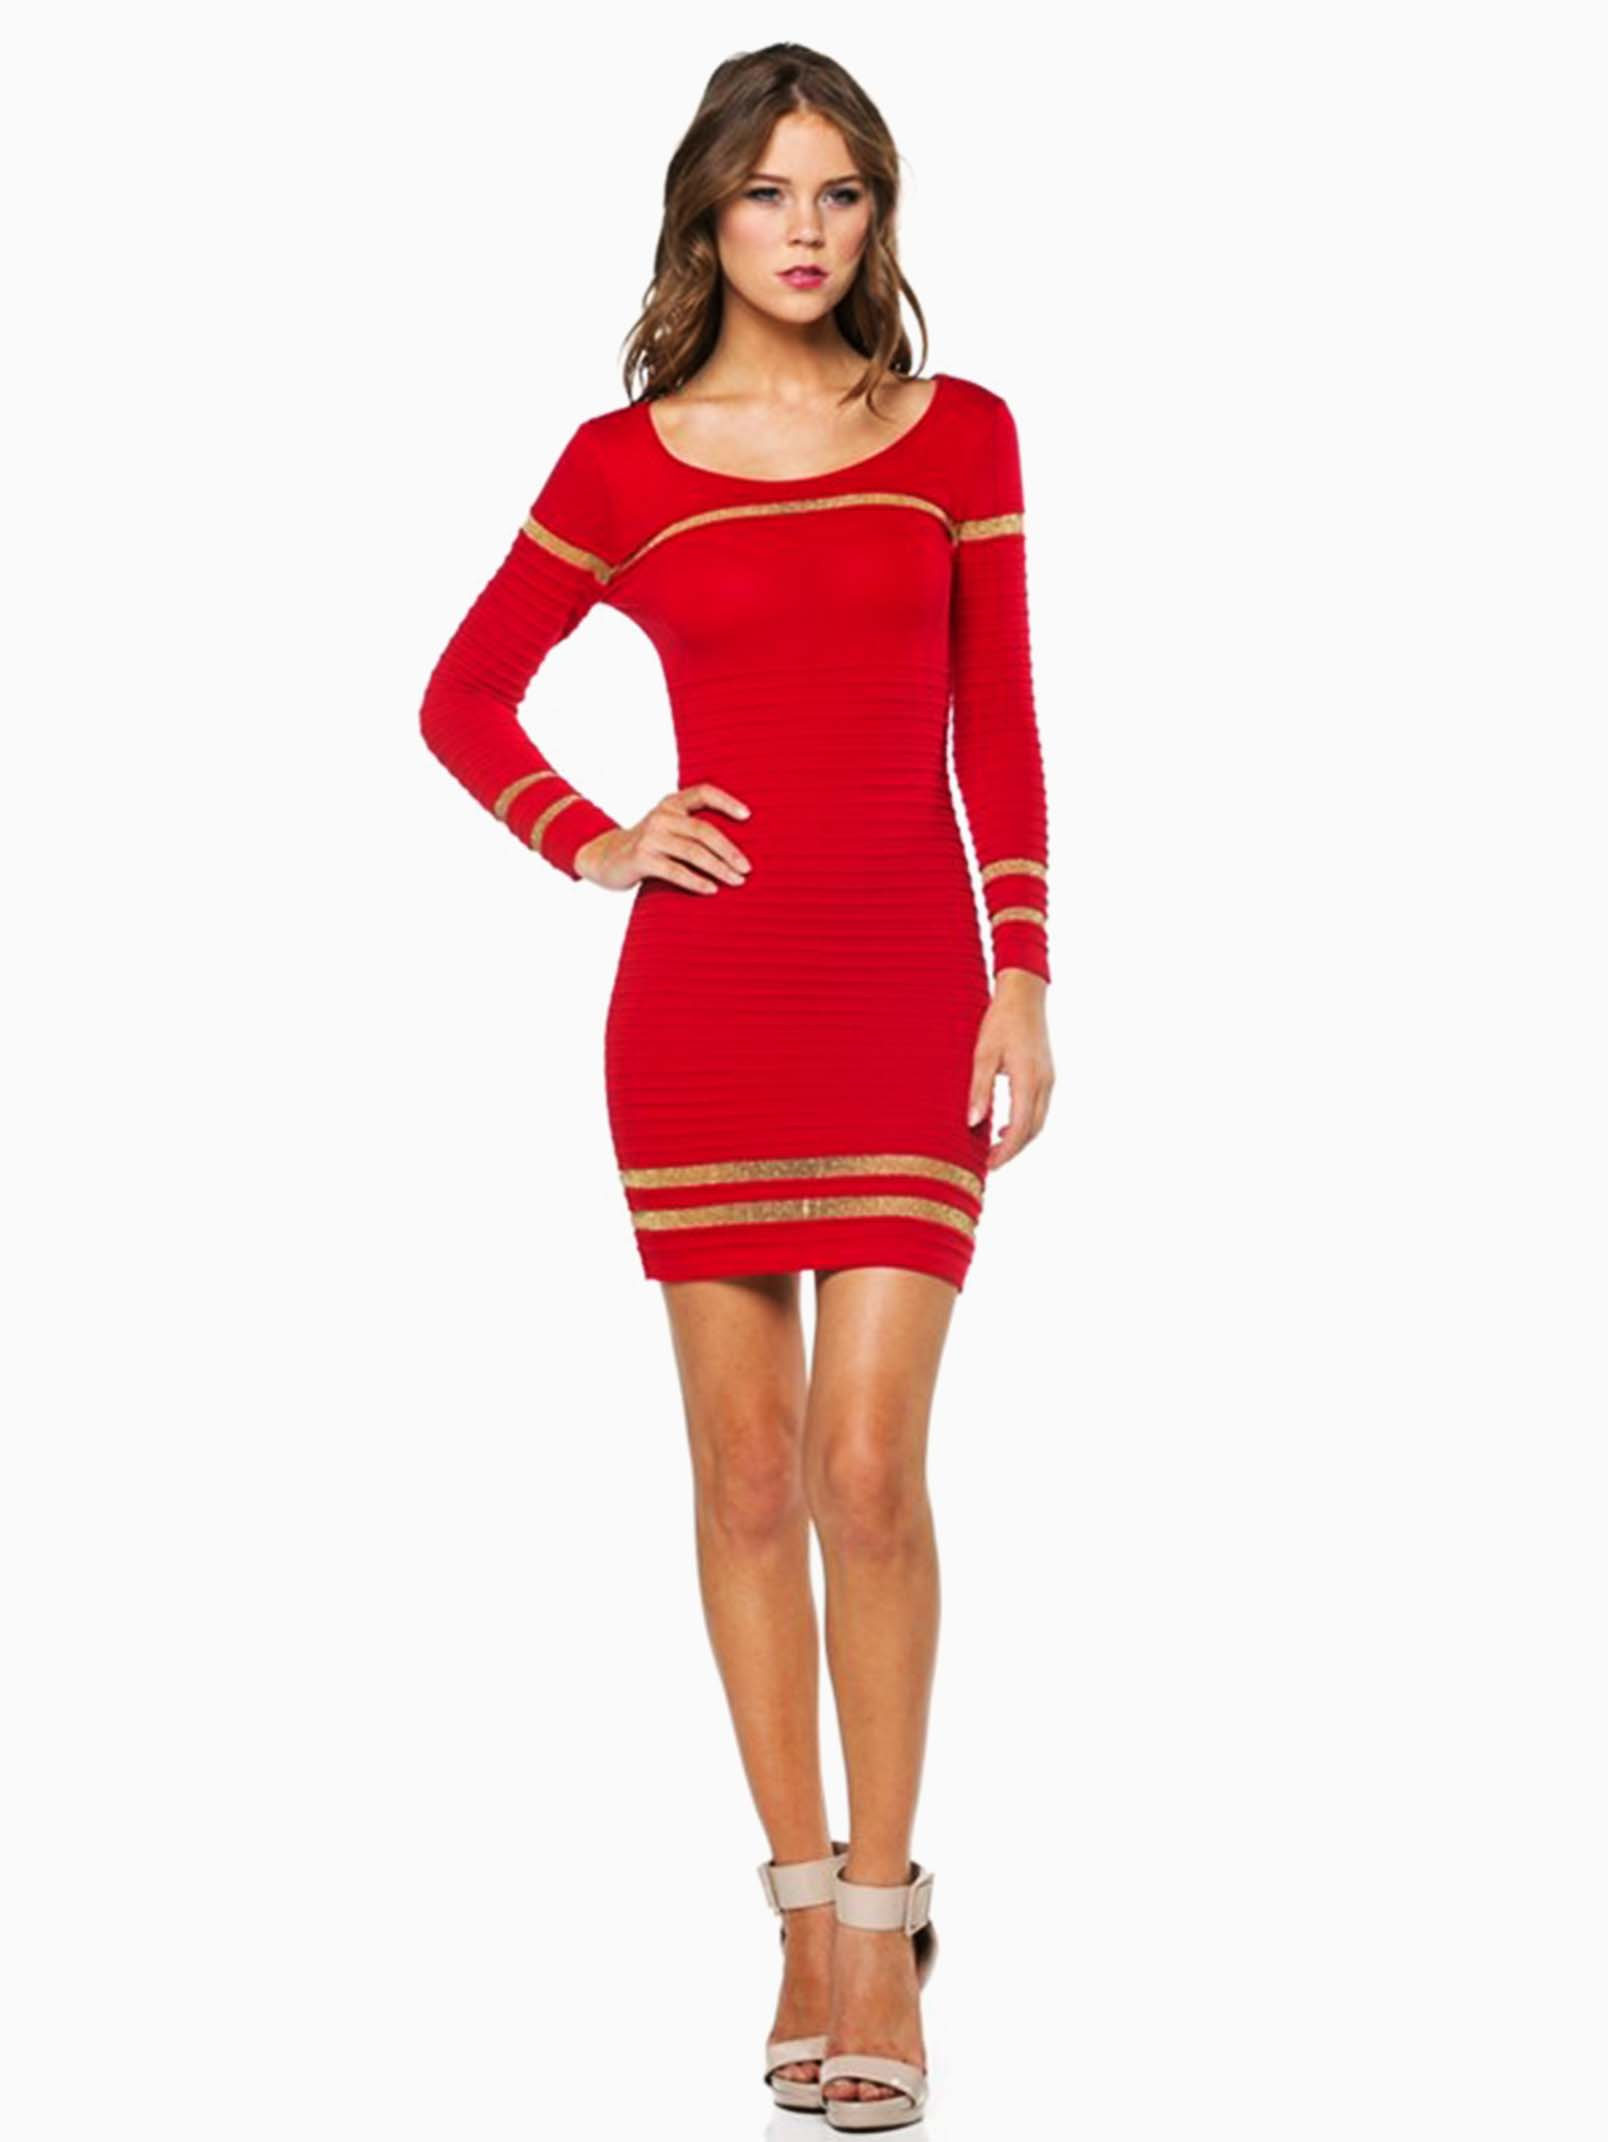 69f0b5bd422 Hera Collection Red Ribbed Shimmer Striped Short Sweater Dress ...